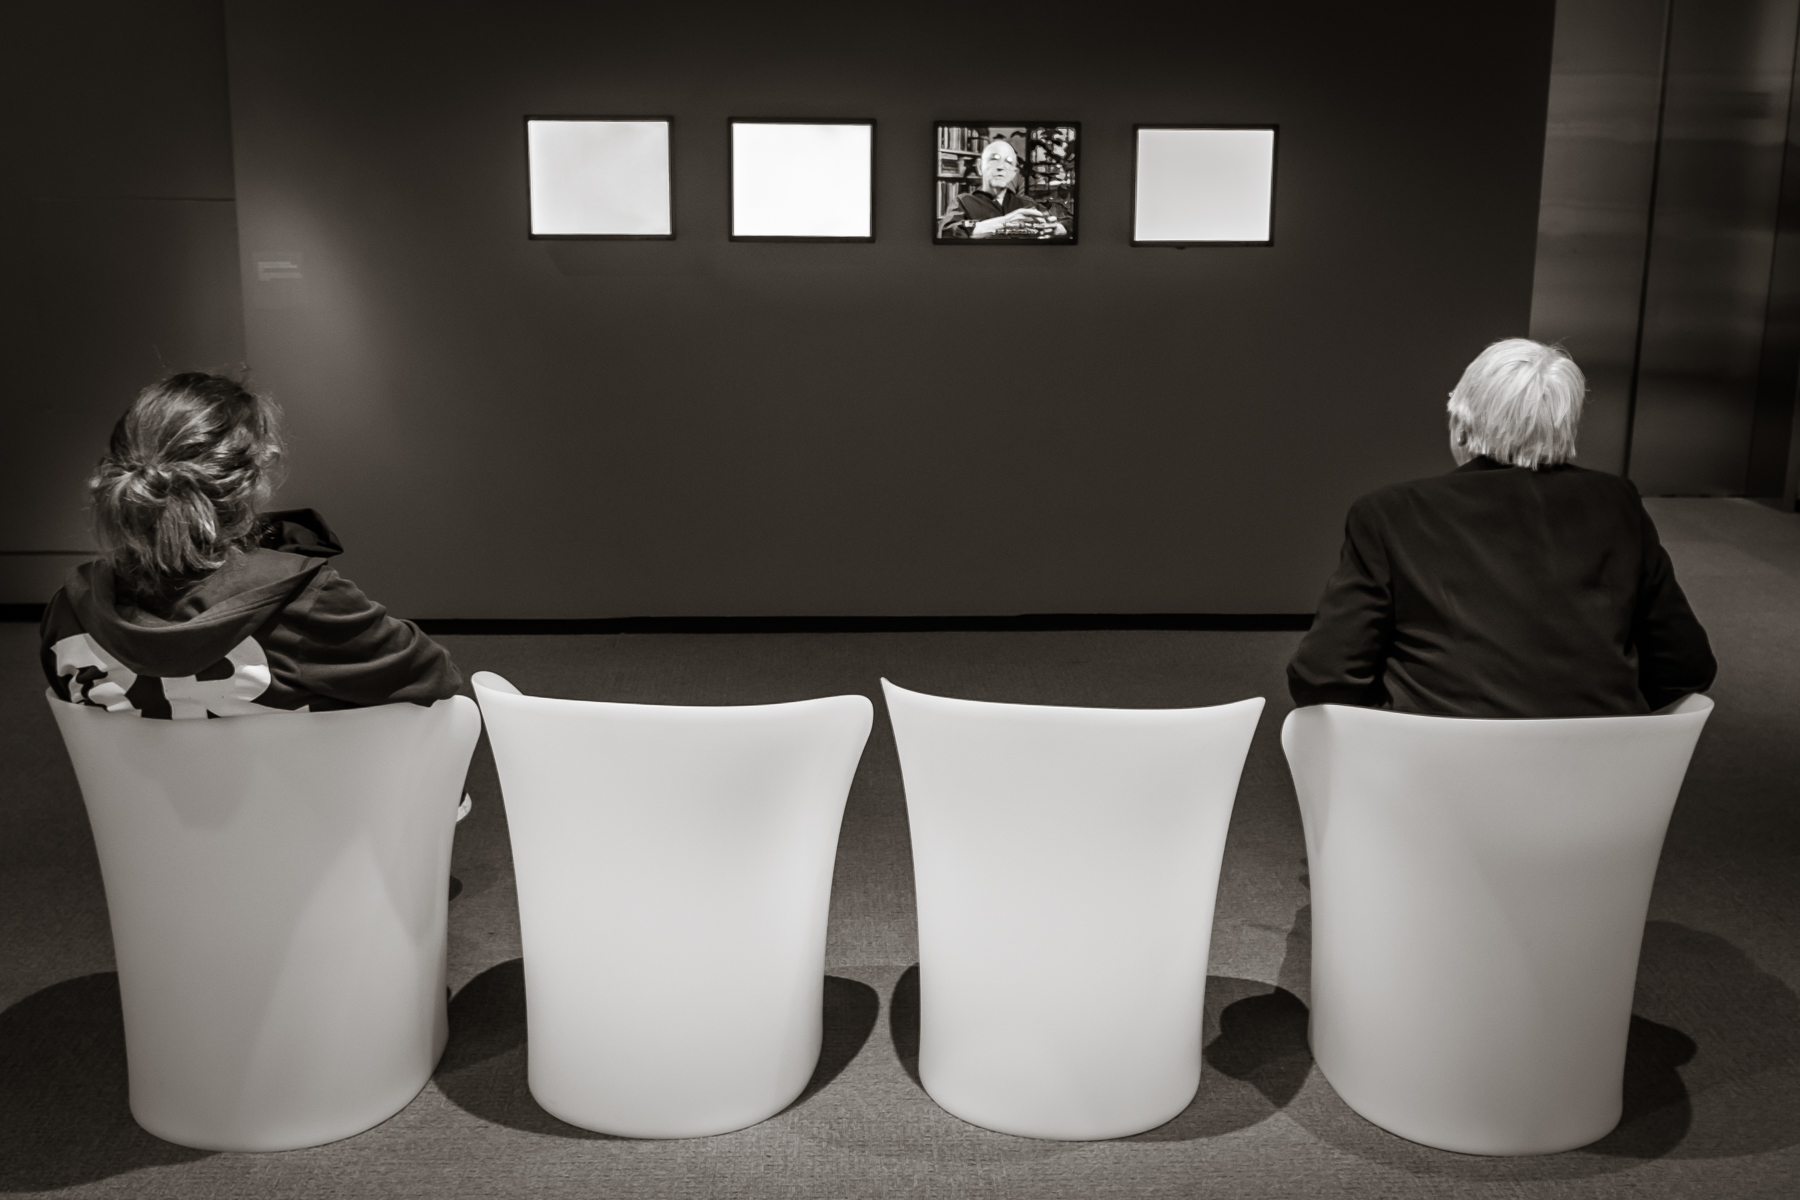 photographer Duane Michals, pre-recorded, at his career retrospective   Peabody Essex Museum, Salem, MA 2015